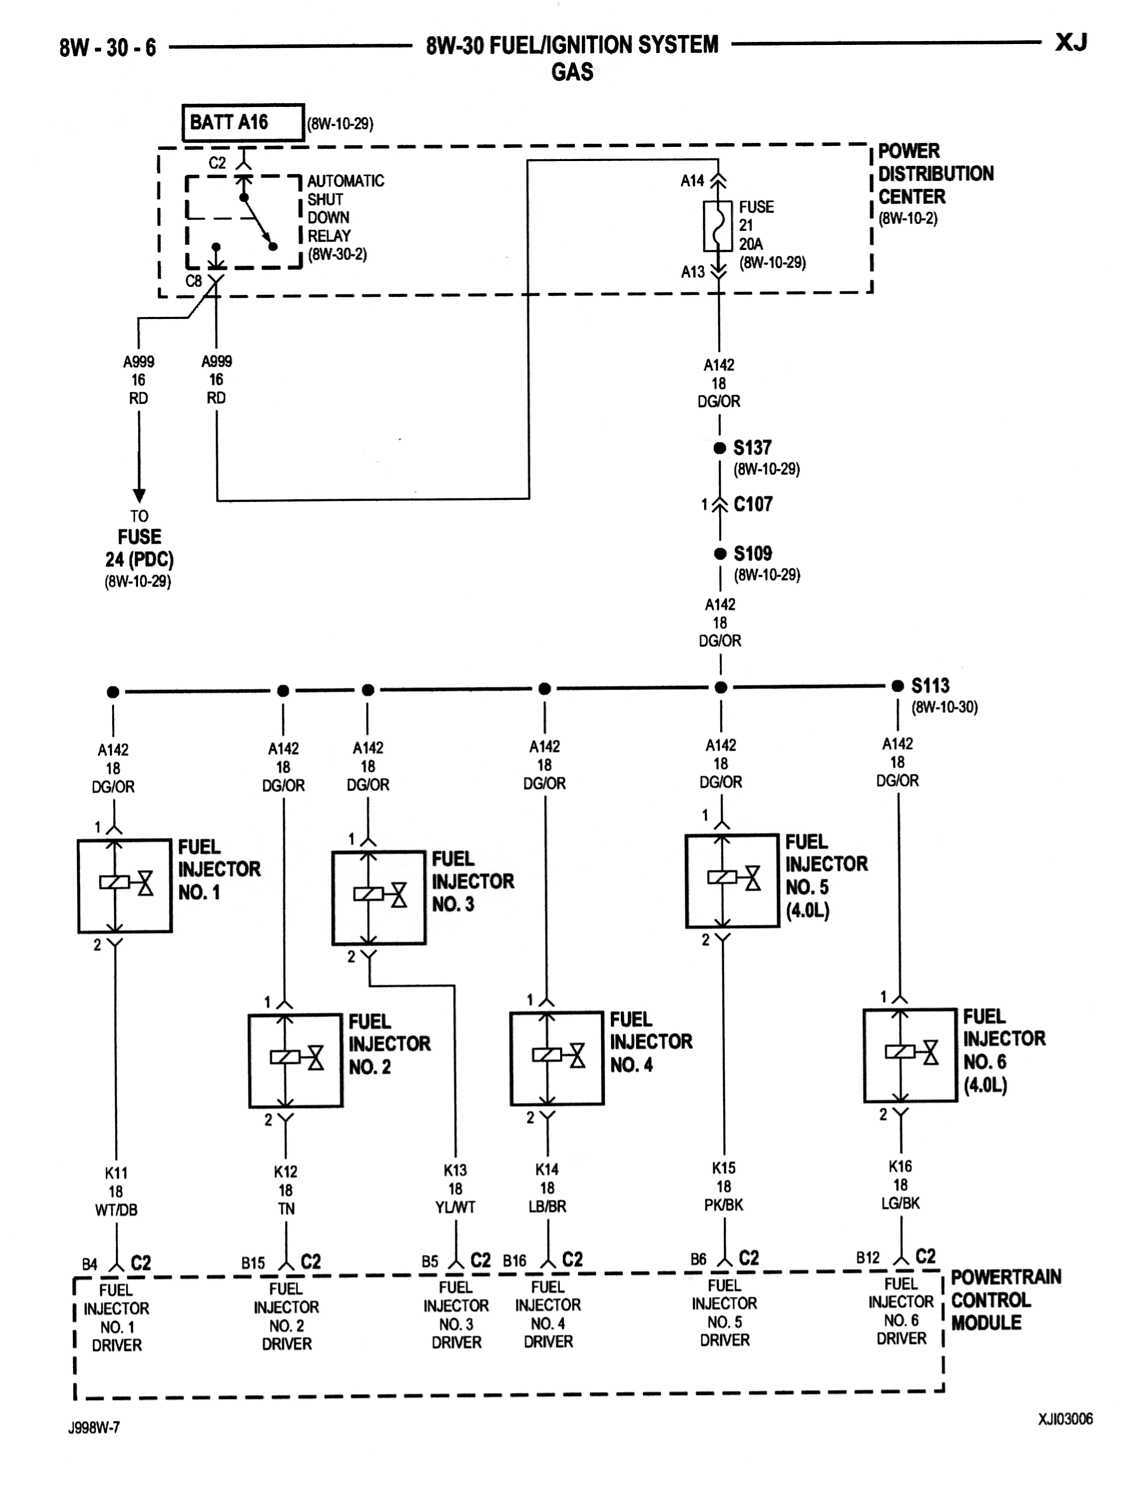 hight resolution of 2000 jeep grand cherokee fuel injector wiring harness wiring 1997 jeep wrangler fuse diagram fuel injector